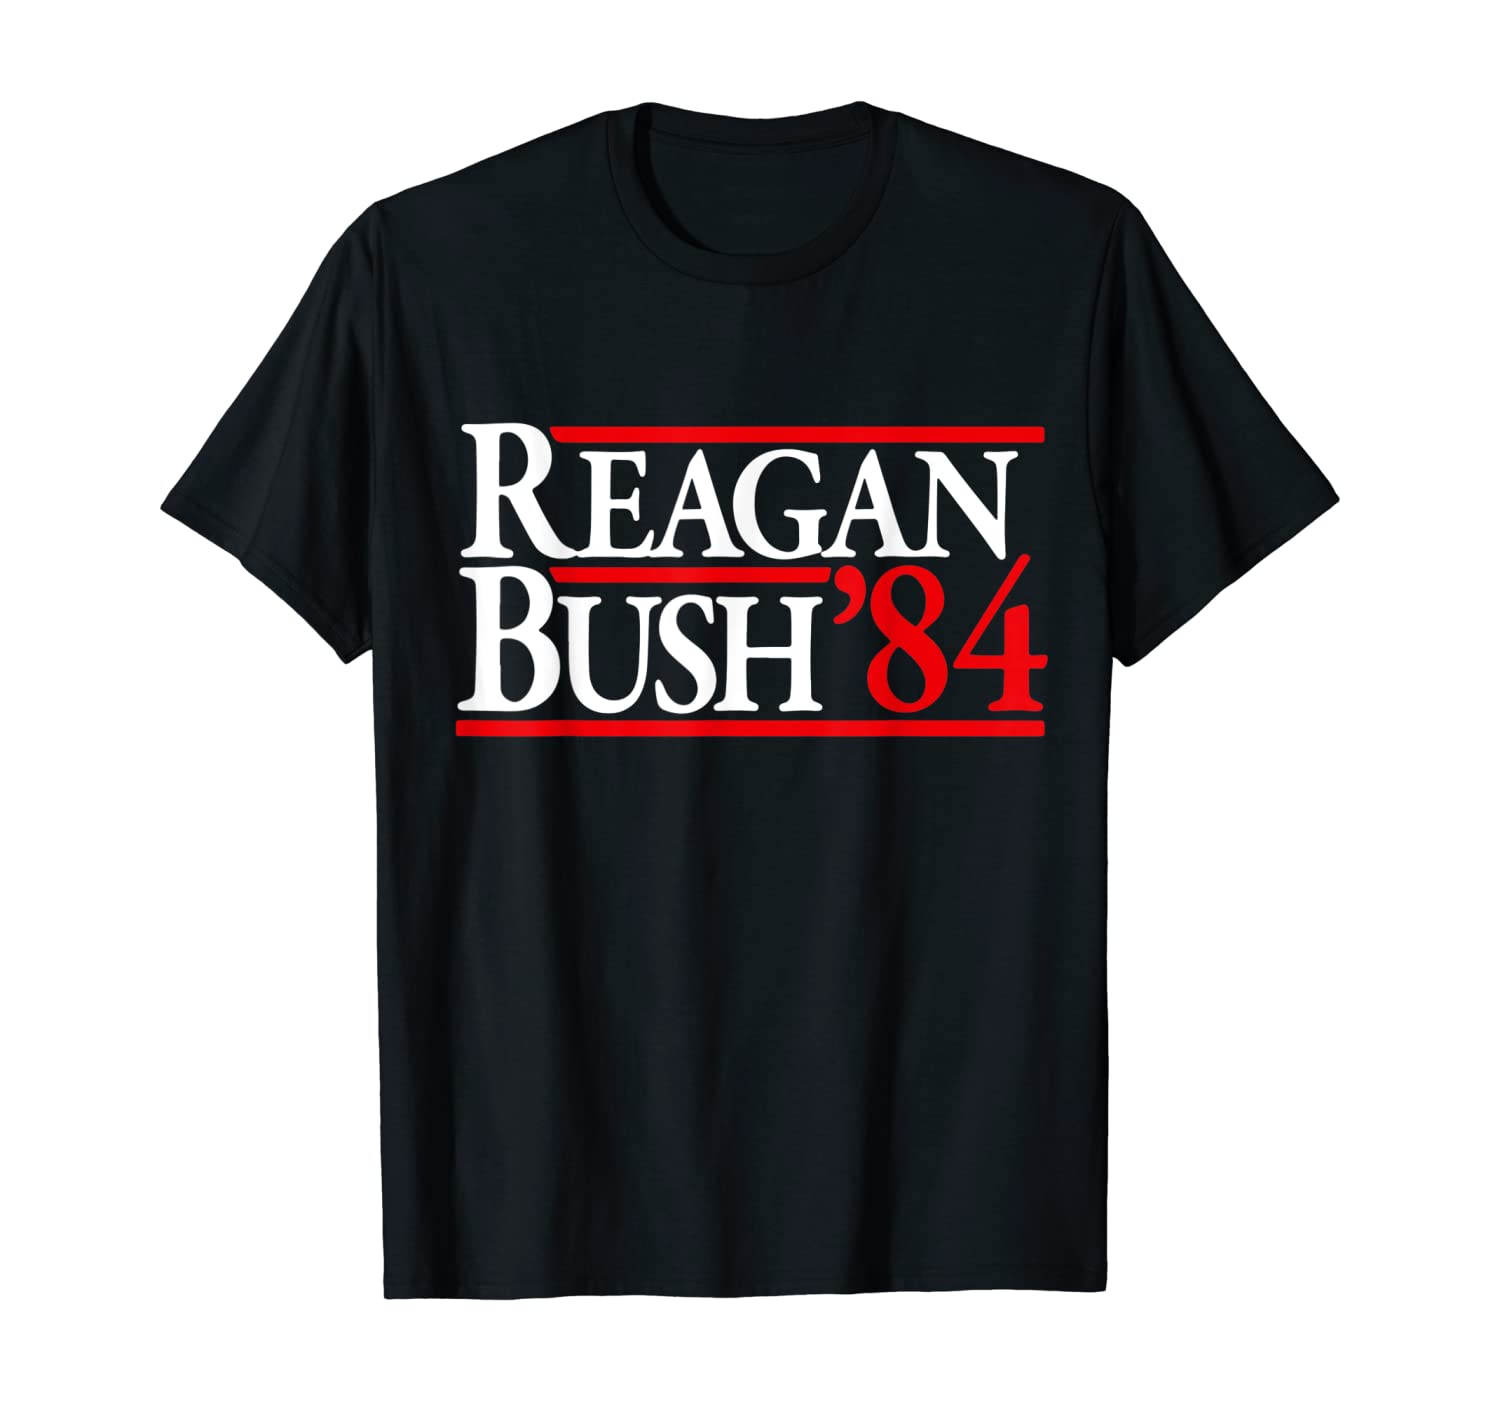 Reagan Bush '84 T-Shirt | Ronald Reagan Vintage Campaign